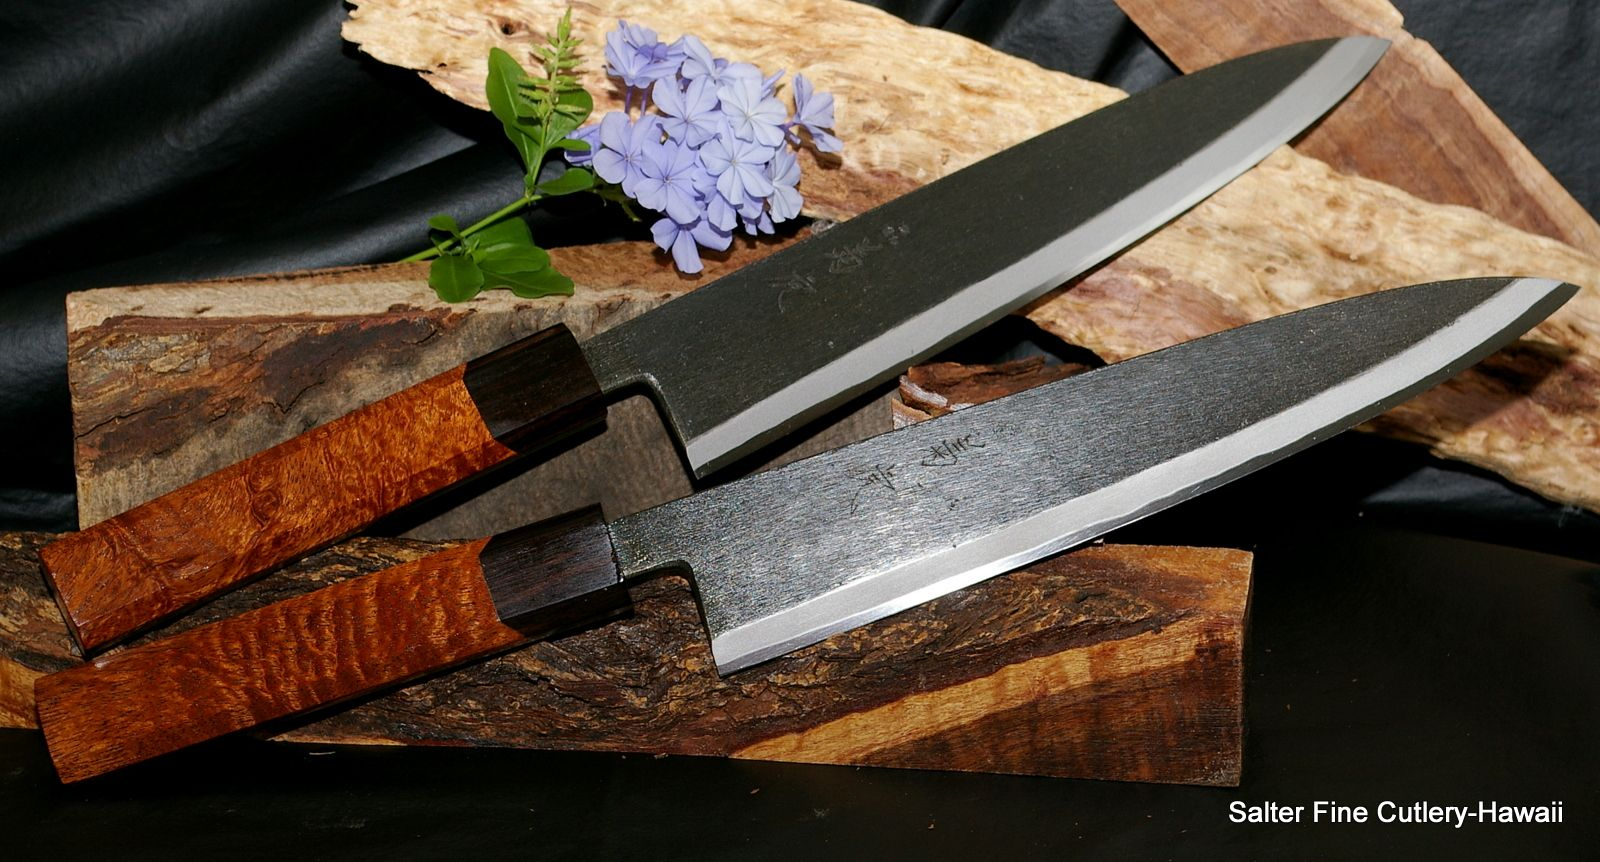 Pair Of Hand Forged Chef Knives With 10 5 Blades Anese Shirogami Carbon Steel Curly Kiawe Wood Handles Custom Requests Welcome Salter Fine Cutlery